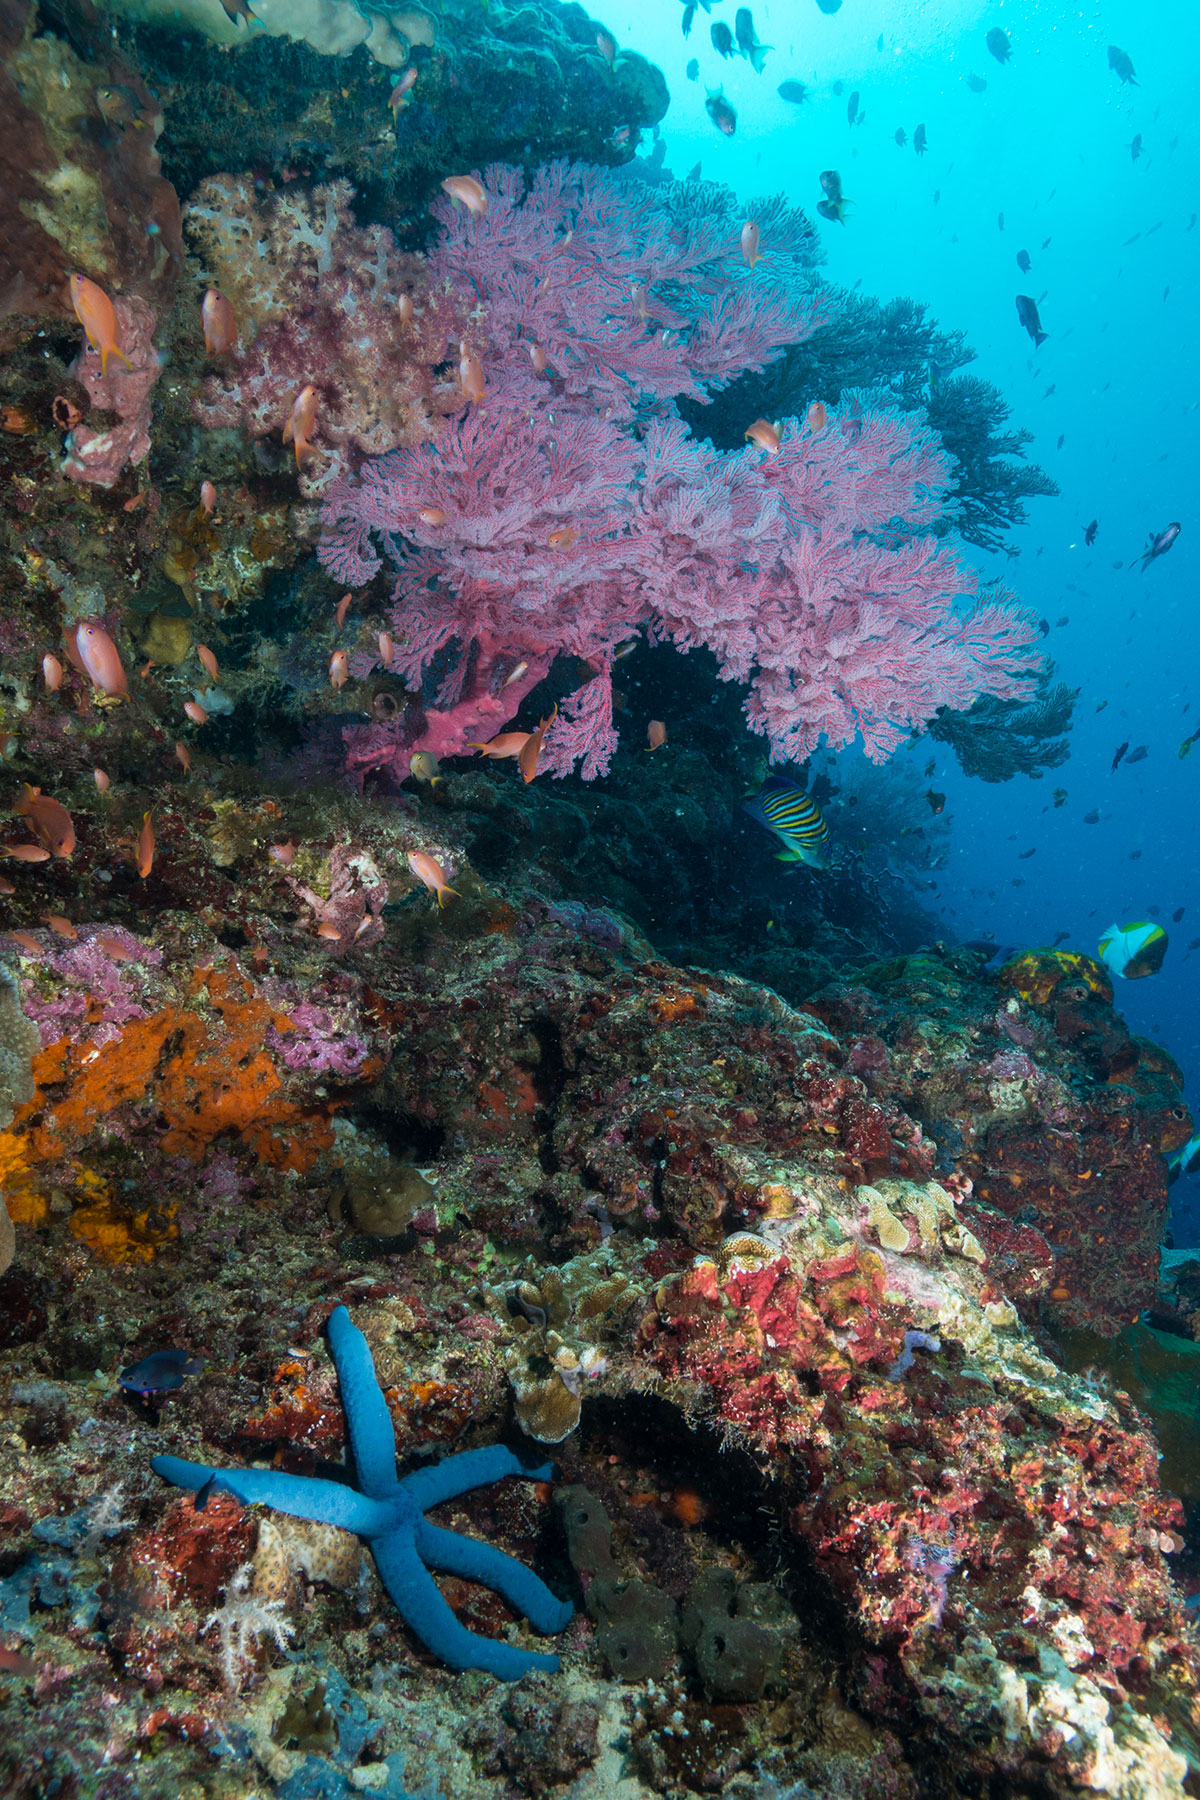 Indonesia, Manado, Bunaken Island, Coral Reef with Sea Star